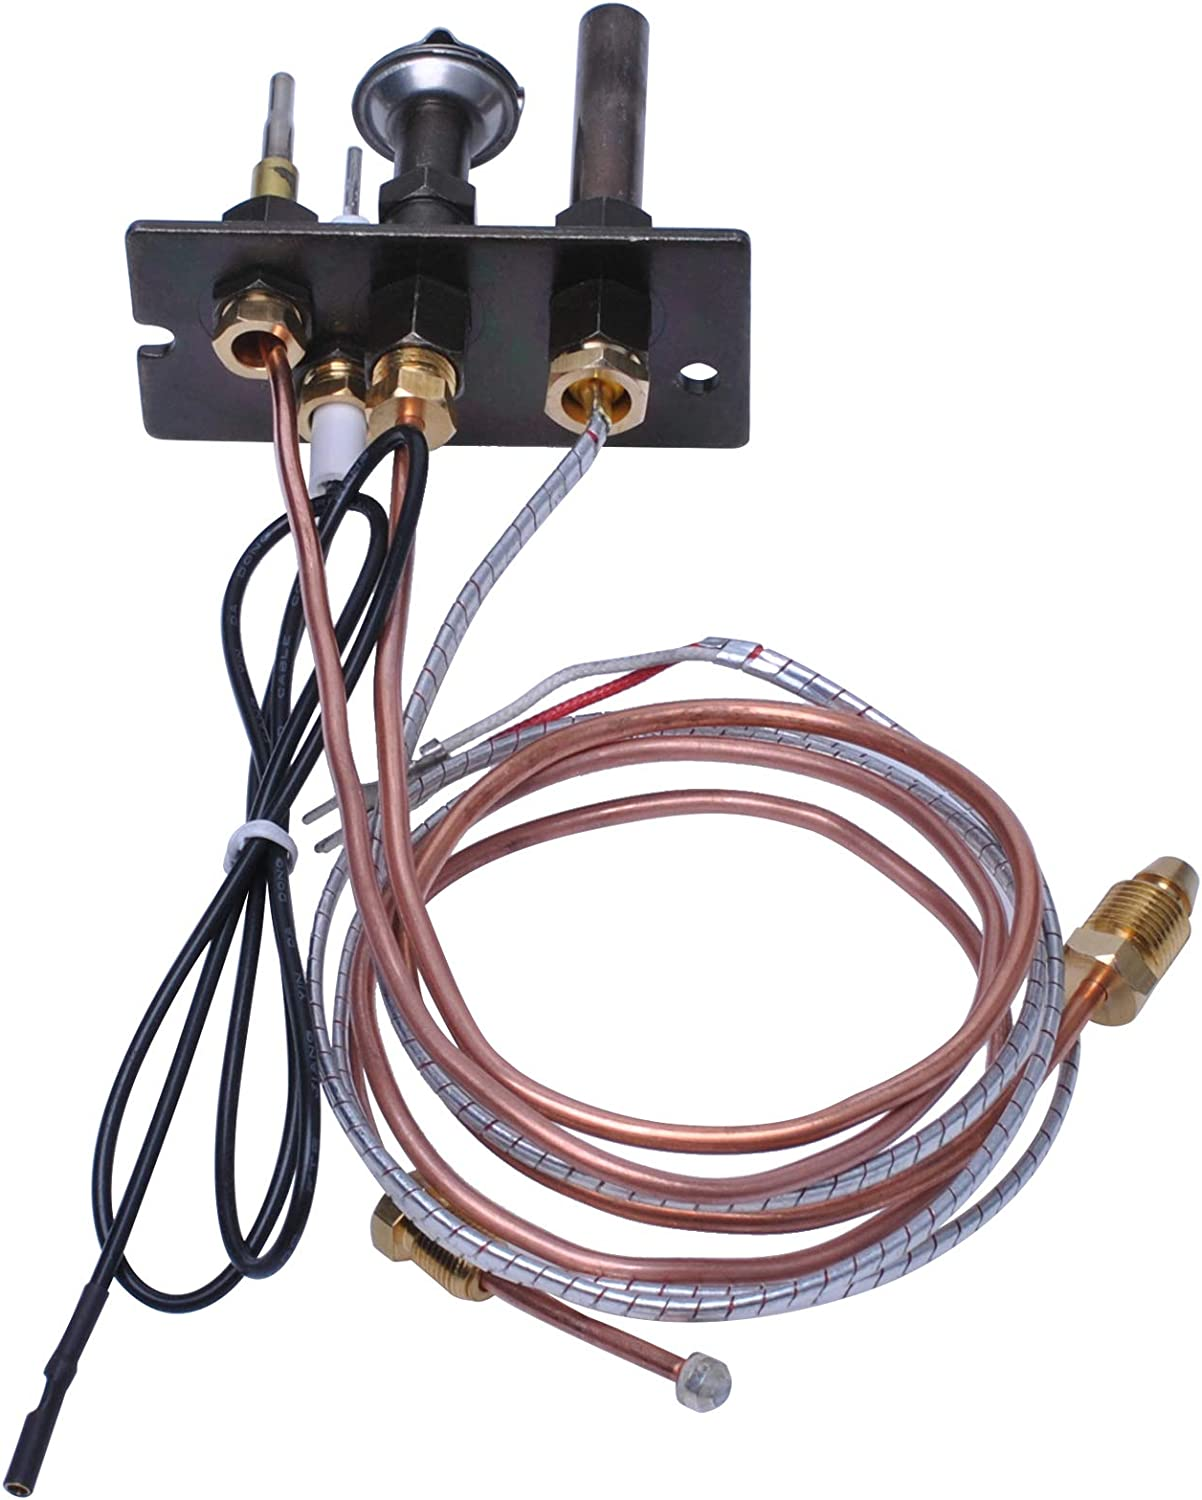 Max 45% OFF Attention brand Wadoy 10002264 Propane Natural Gas NG 3 Way Pilot Assembly SIT